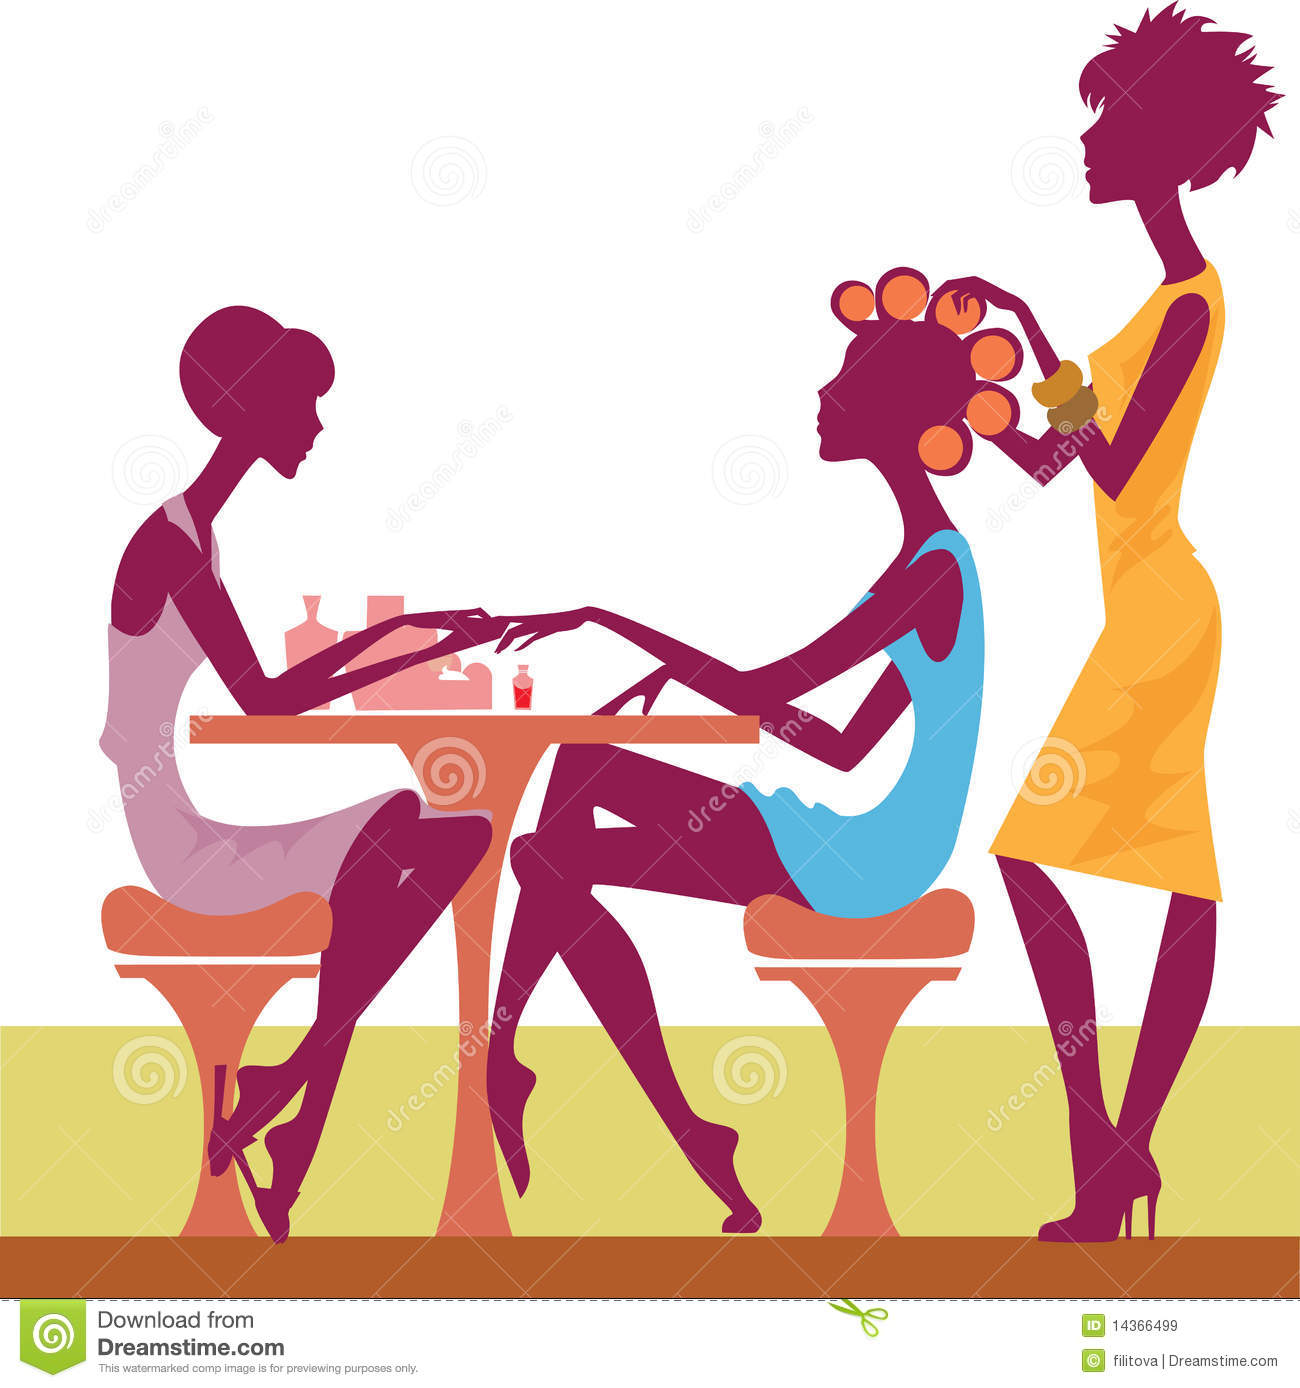 Women in a salon getting a hairstyle and-Women in a salon getting a hairstyle and manicure Royalty Free Stock Images-10